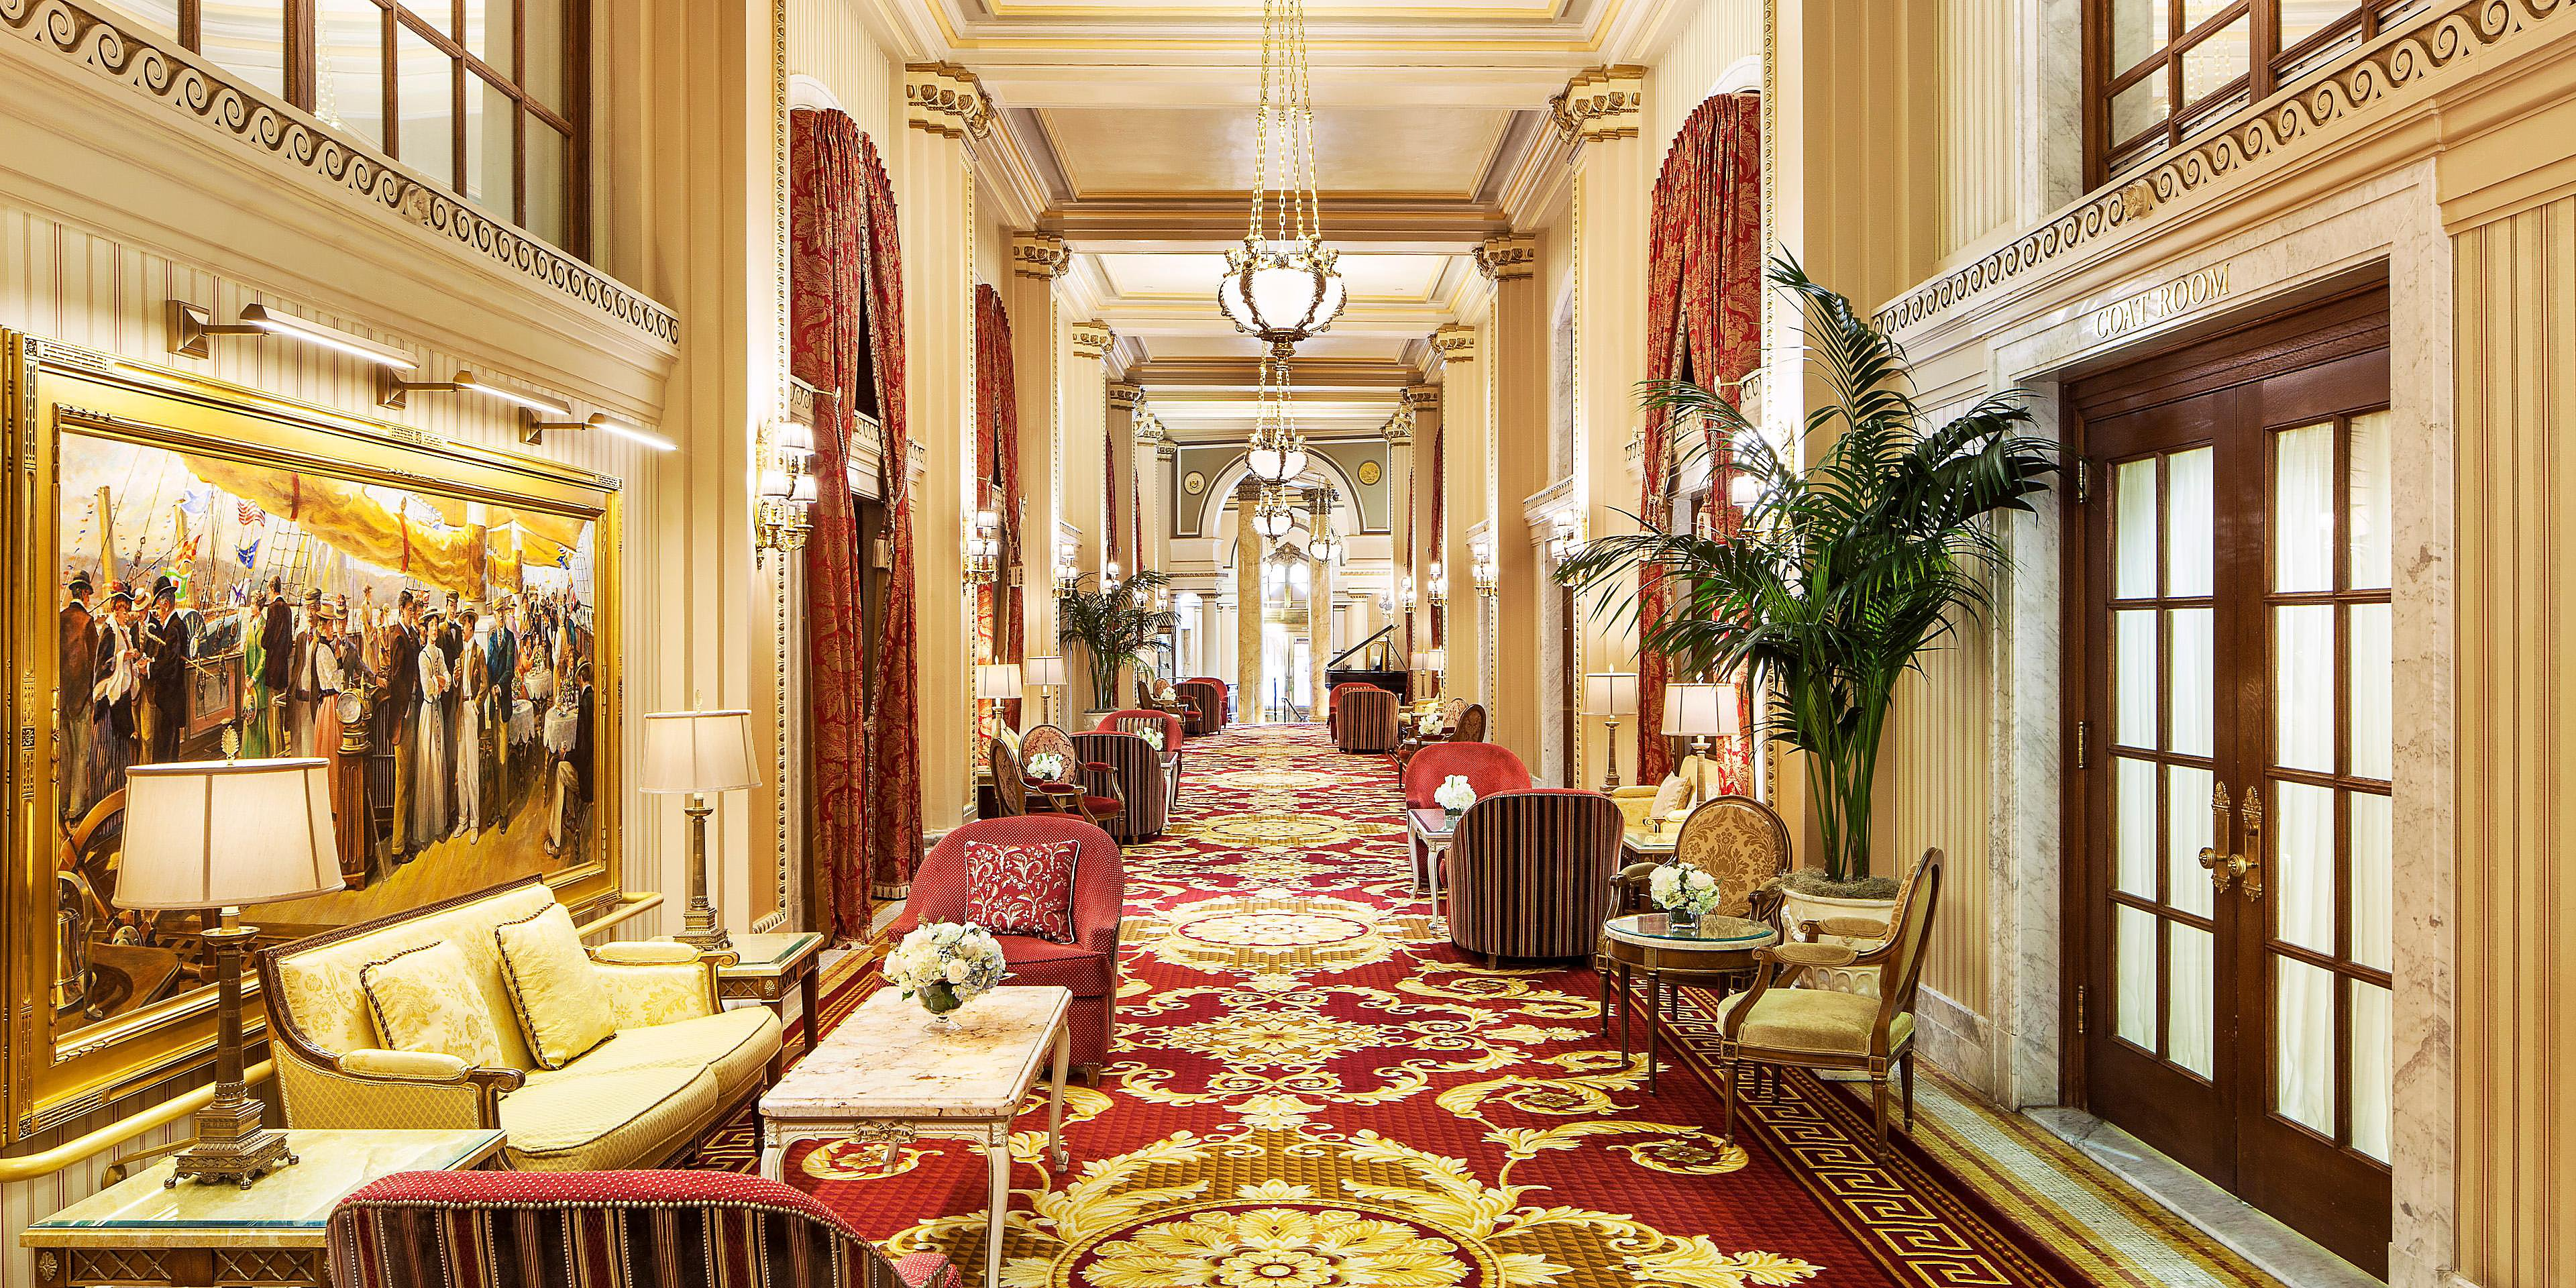 Luxury DC Hotels near the White House | InterContinental The Willard